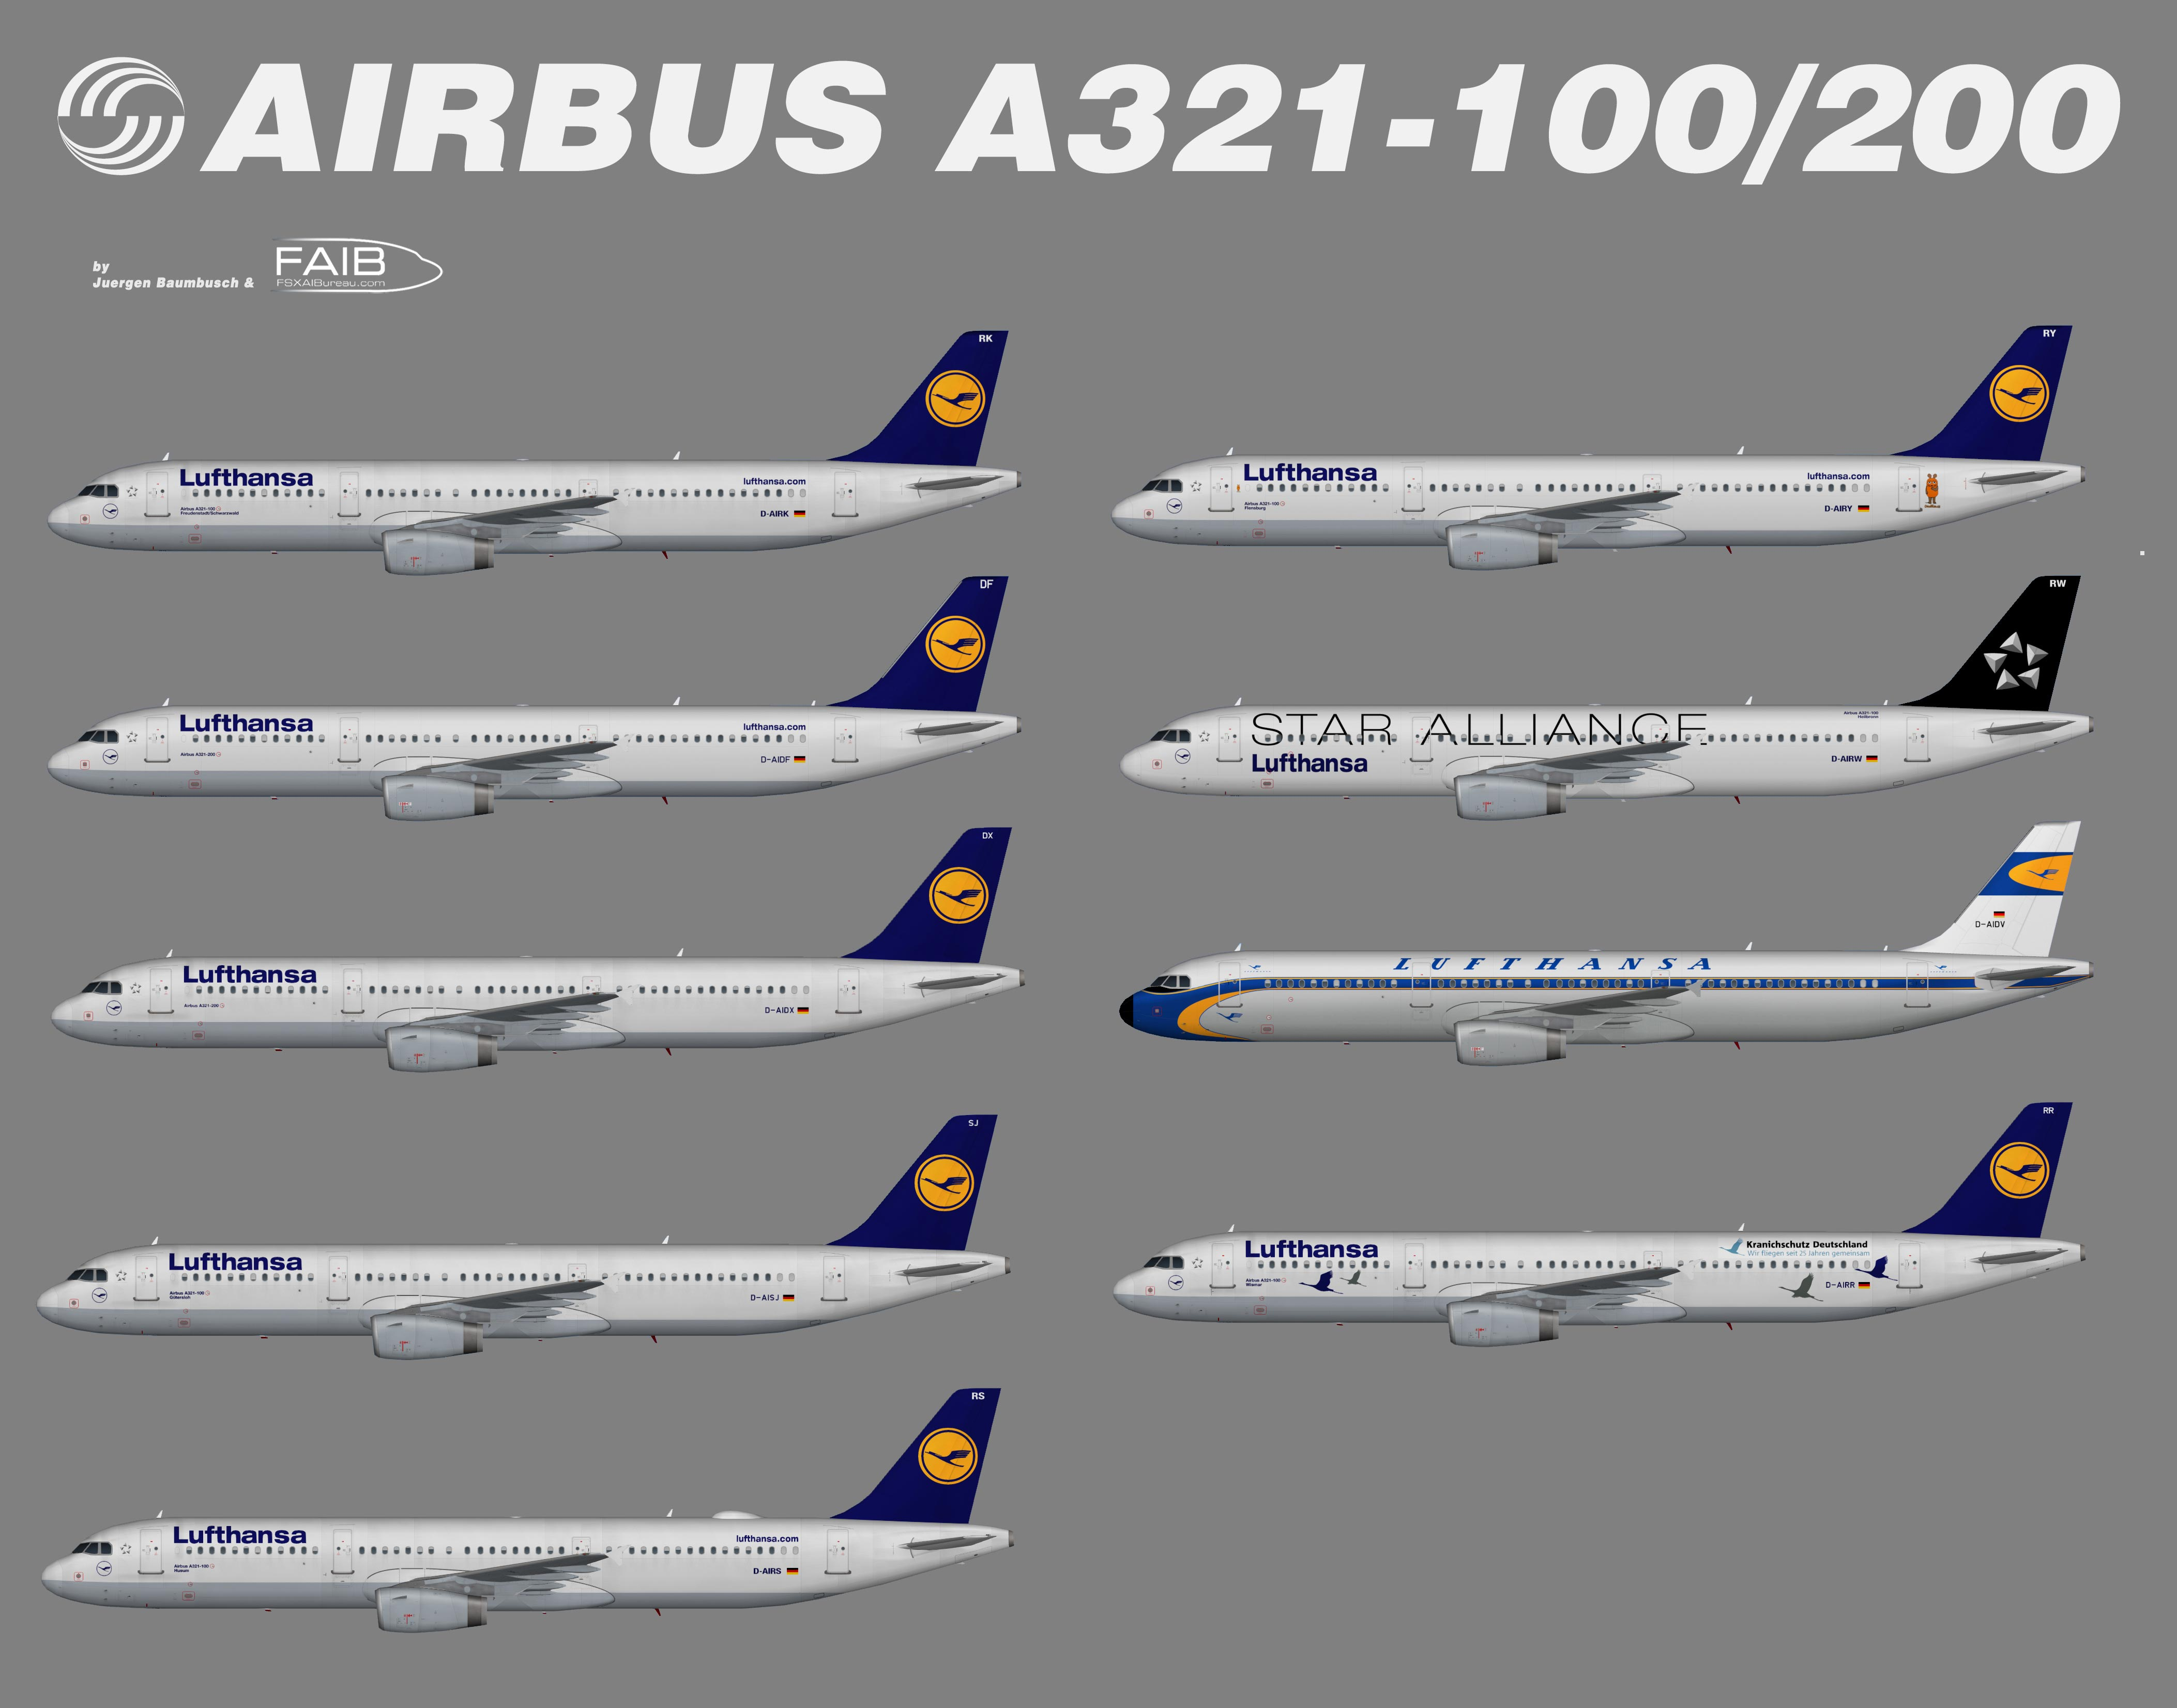 aircraft general practices a320 321 Aerosoft airbus a318/319/320/321 the airbus a318/319/320/321 in fsx step-by-step tutorial vol 6 06 -0 19 page 25 october 2015  aerosoft airbus a318/319/320/321.